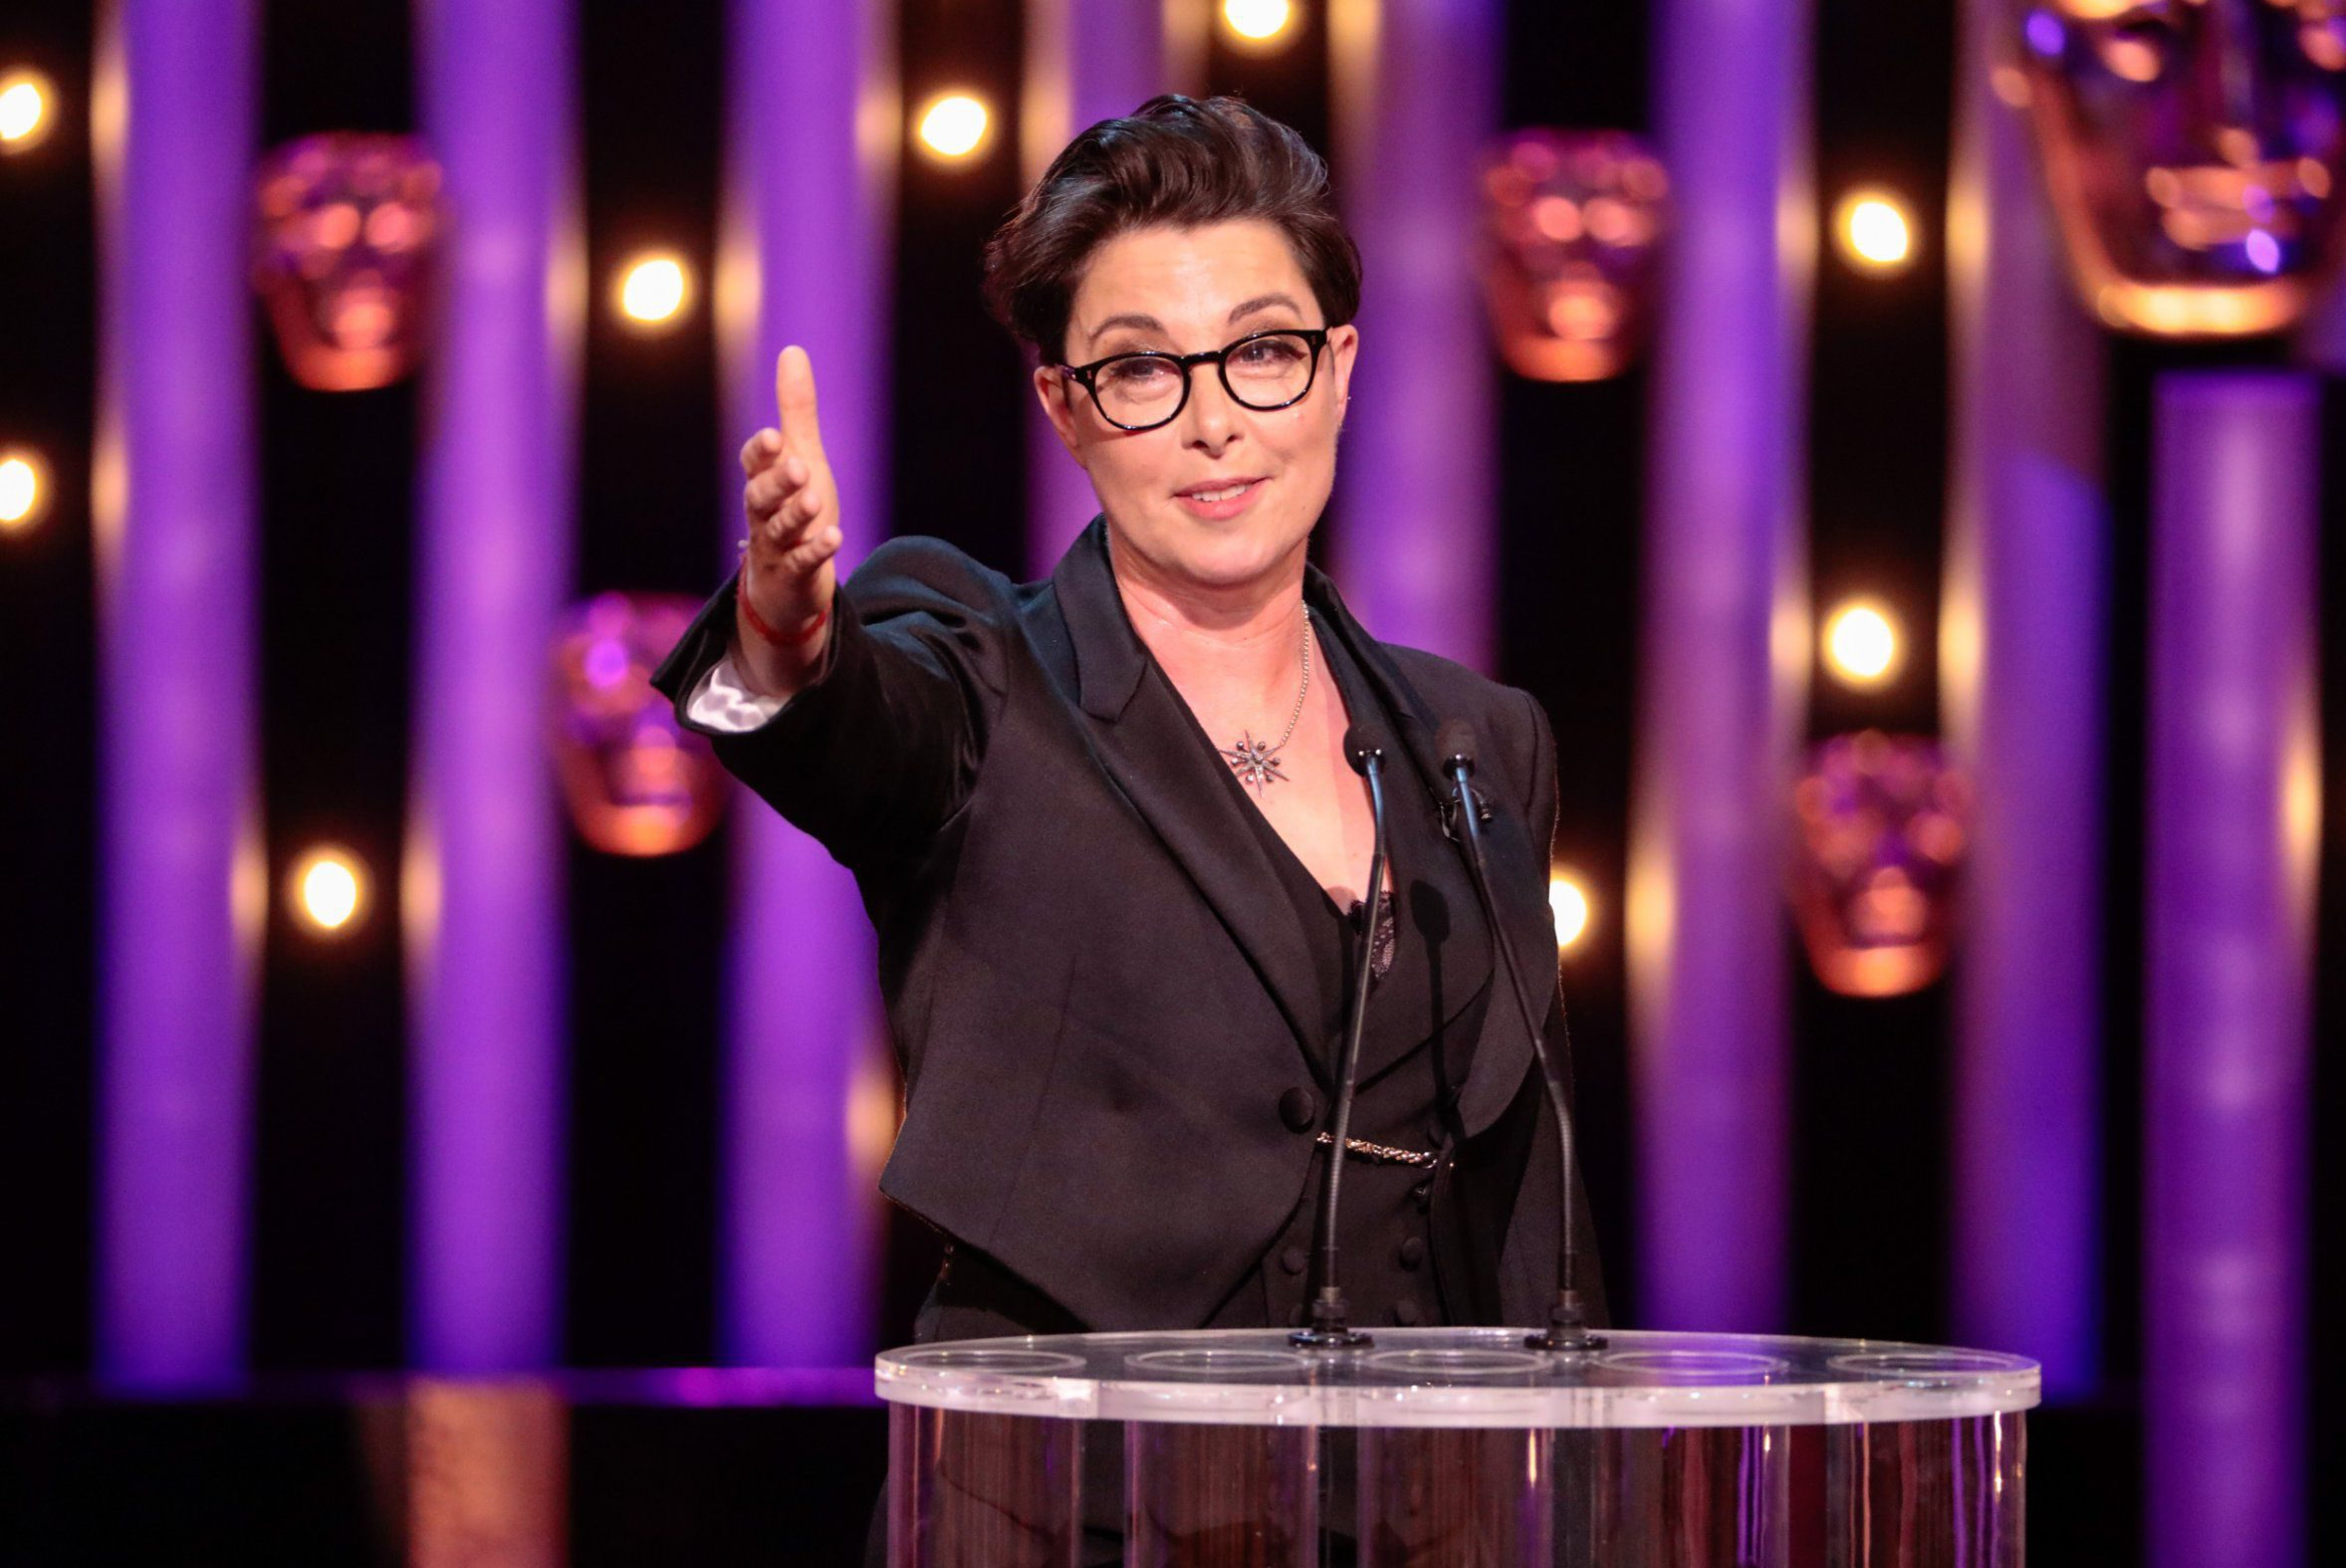 Germaine Greer says Sue Perkins' equal pay jokes at the Baftas were 'mistimed' and 'didn't work'